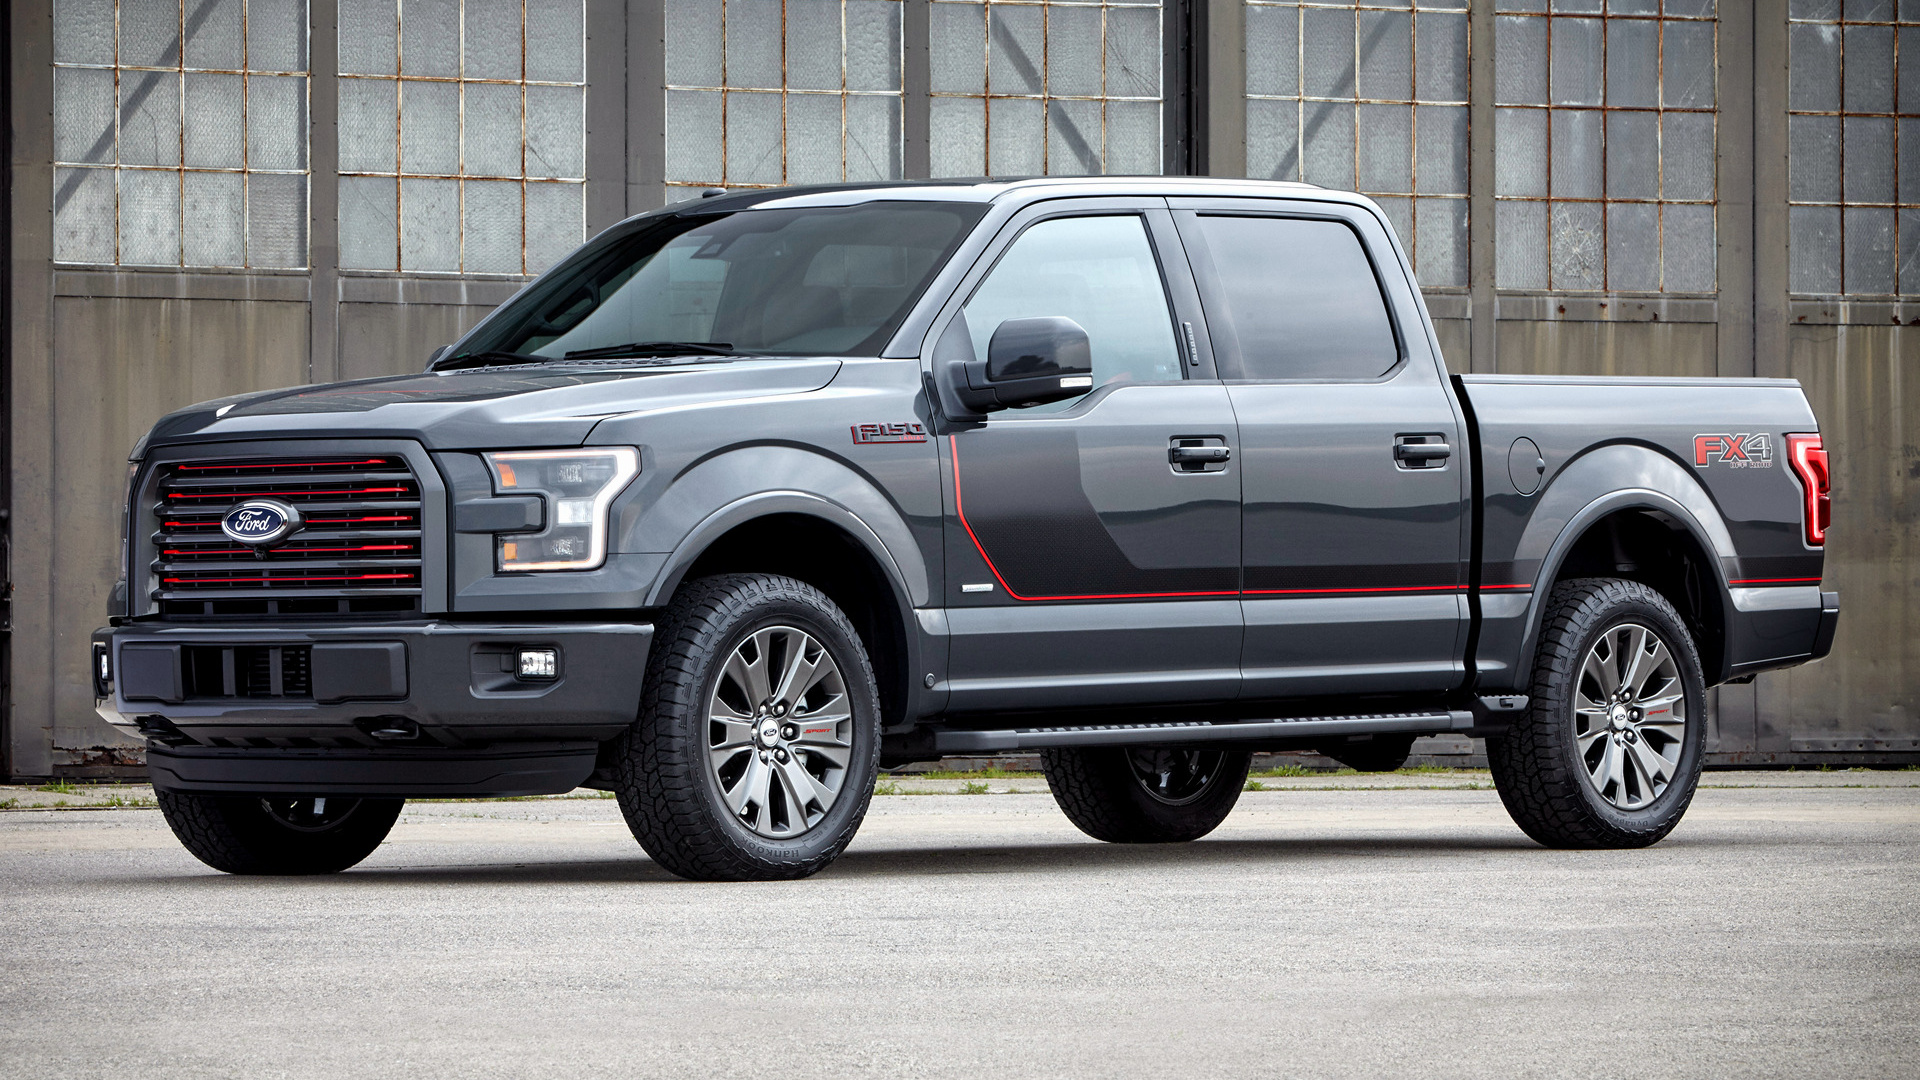 Ford F-150 Lariat FX4 SuperCrew Appearance Package (2016) Wallpapers ...